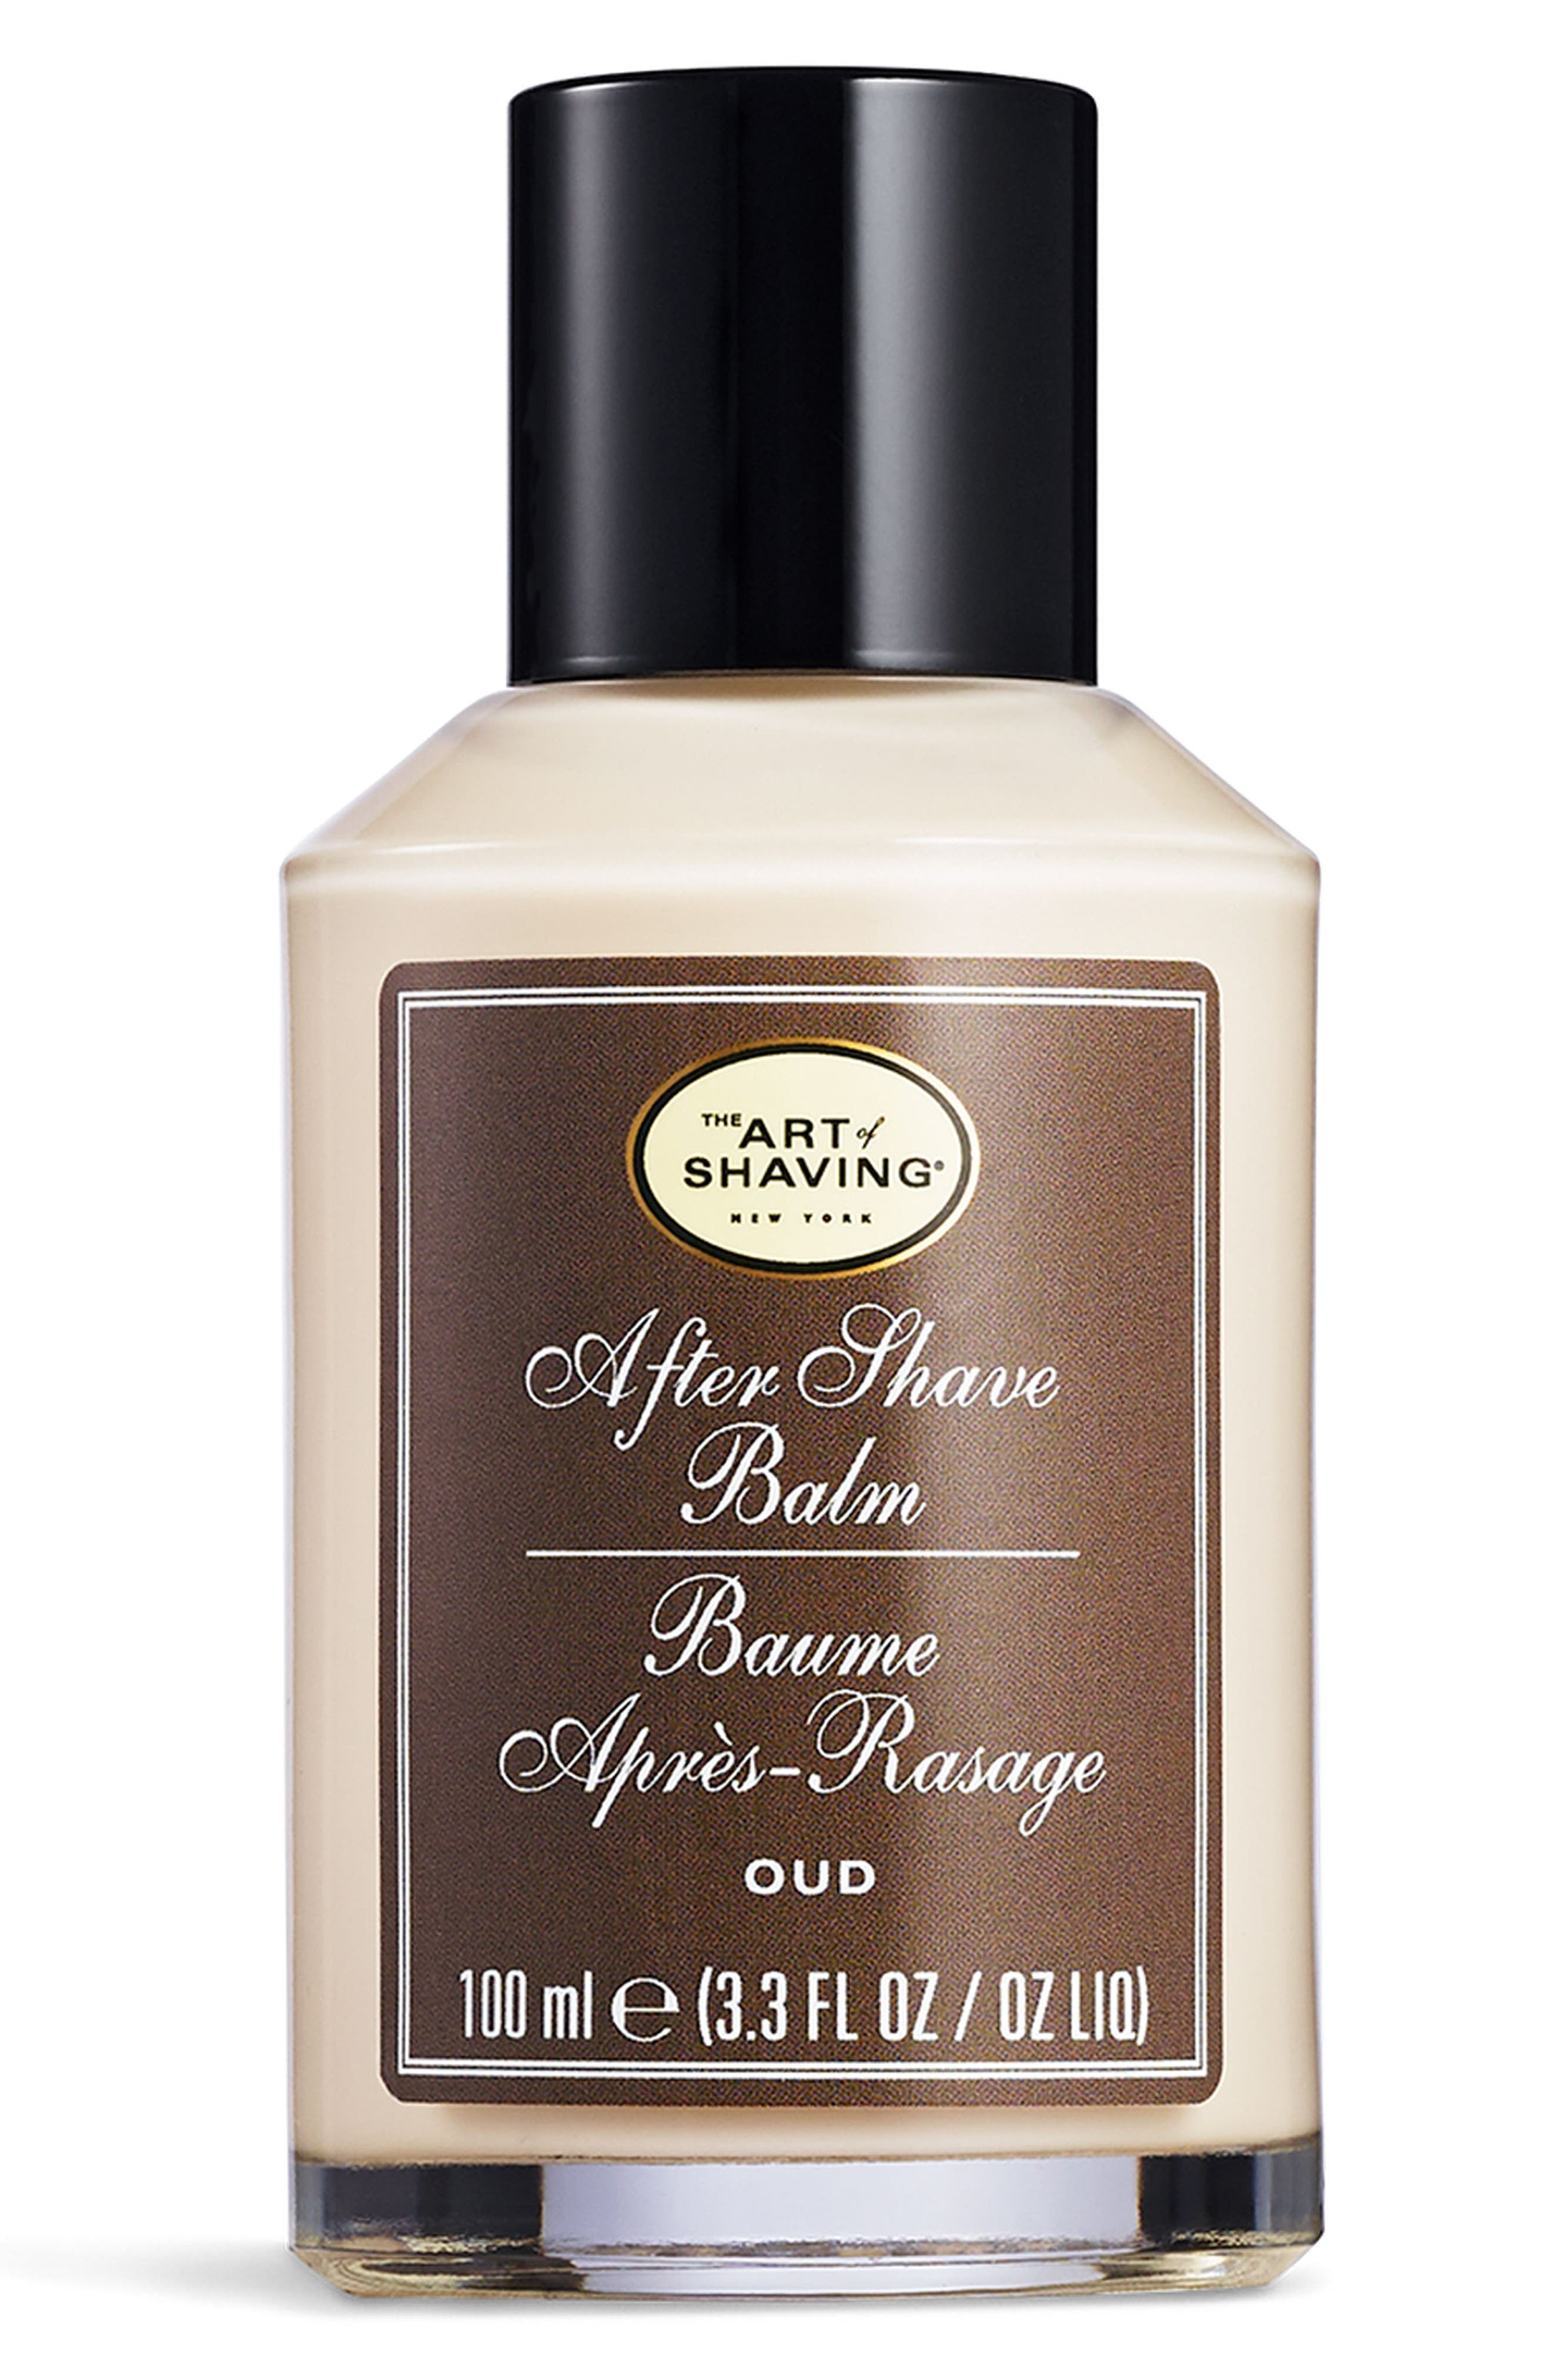 The Art of Shaving® Oud After-Shave Balm